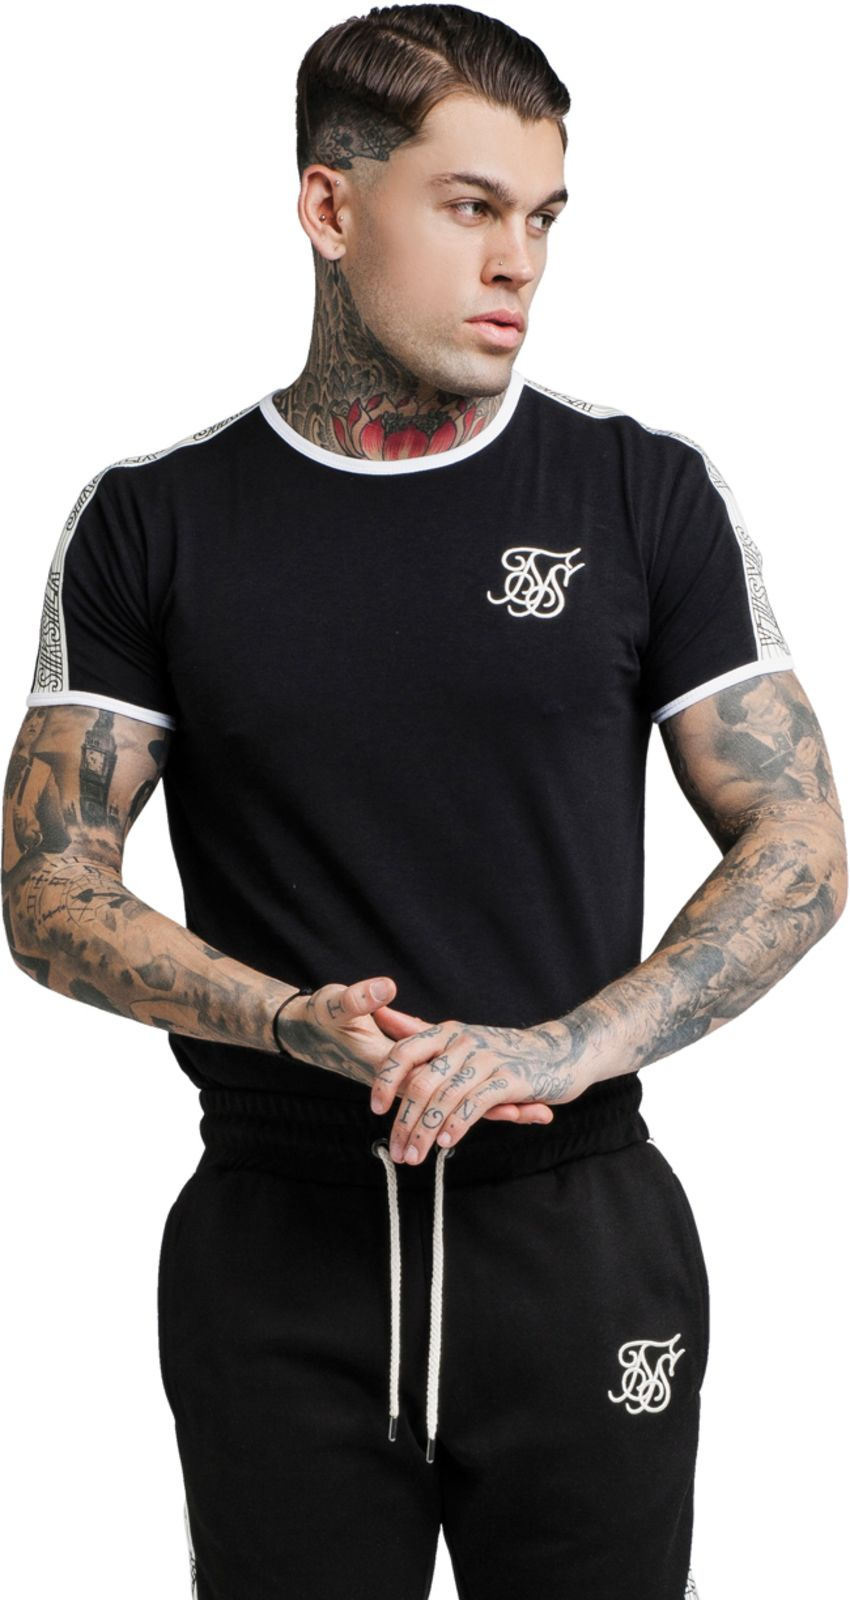 Sik Silk Taped Runner T-Shirt Black